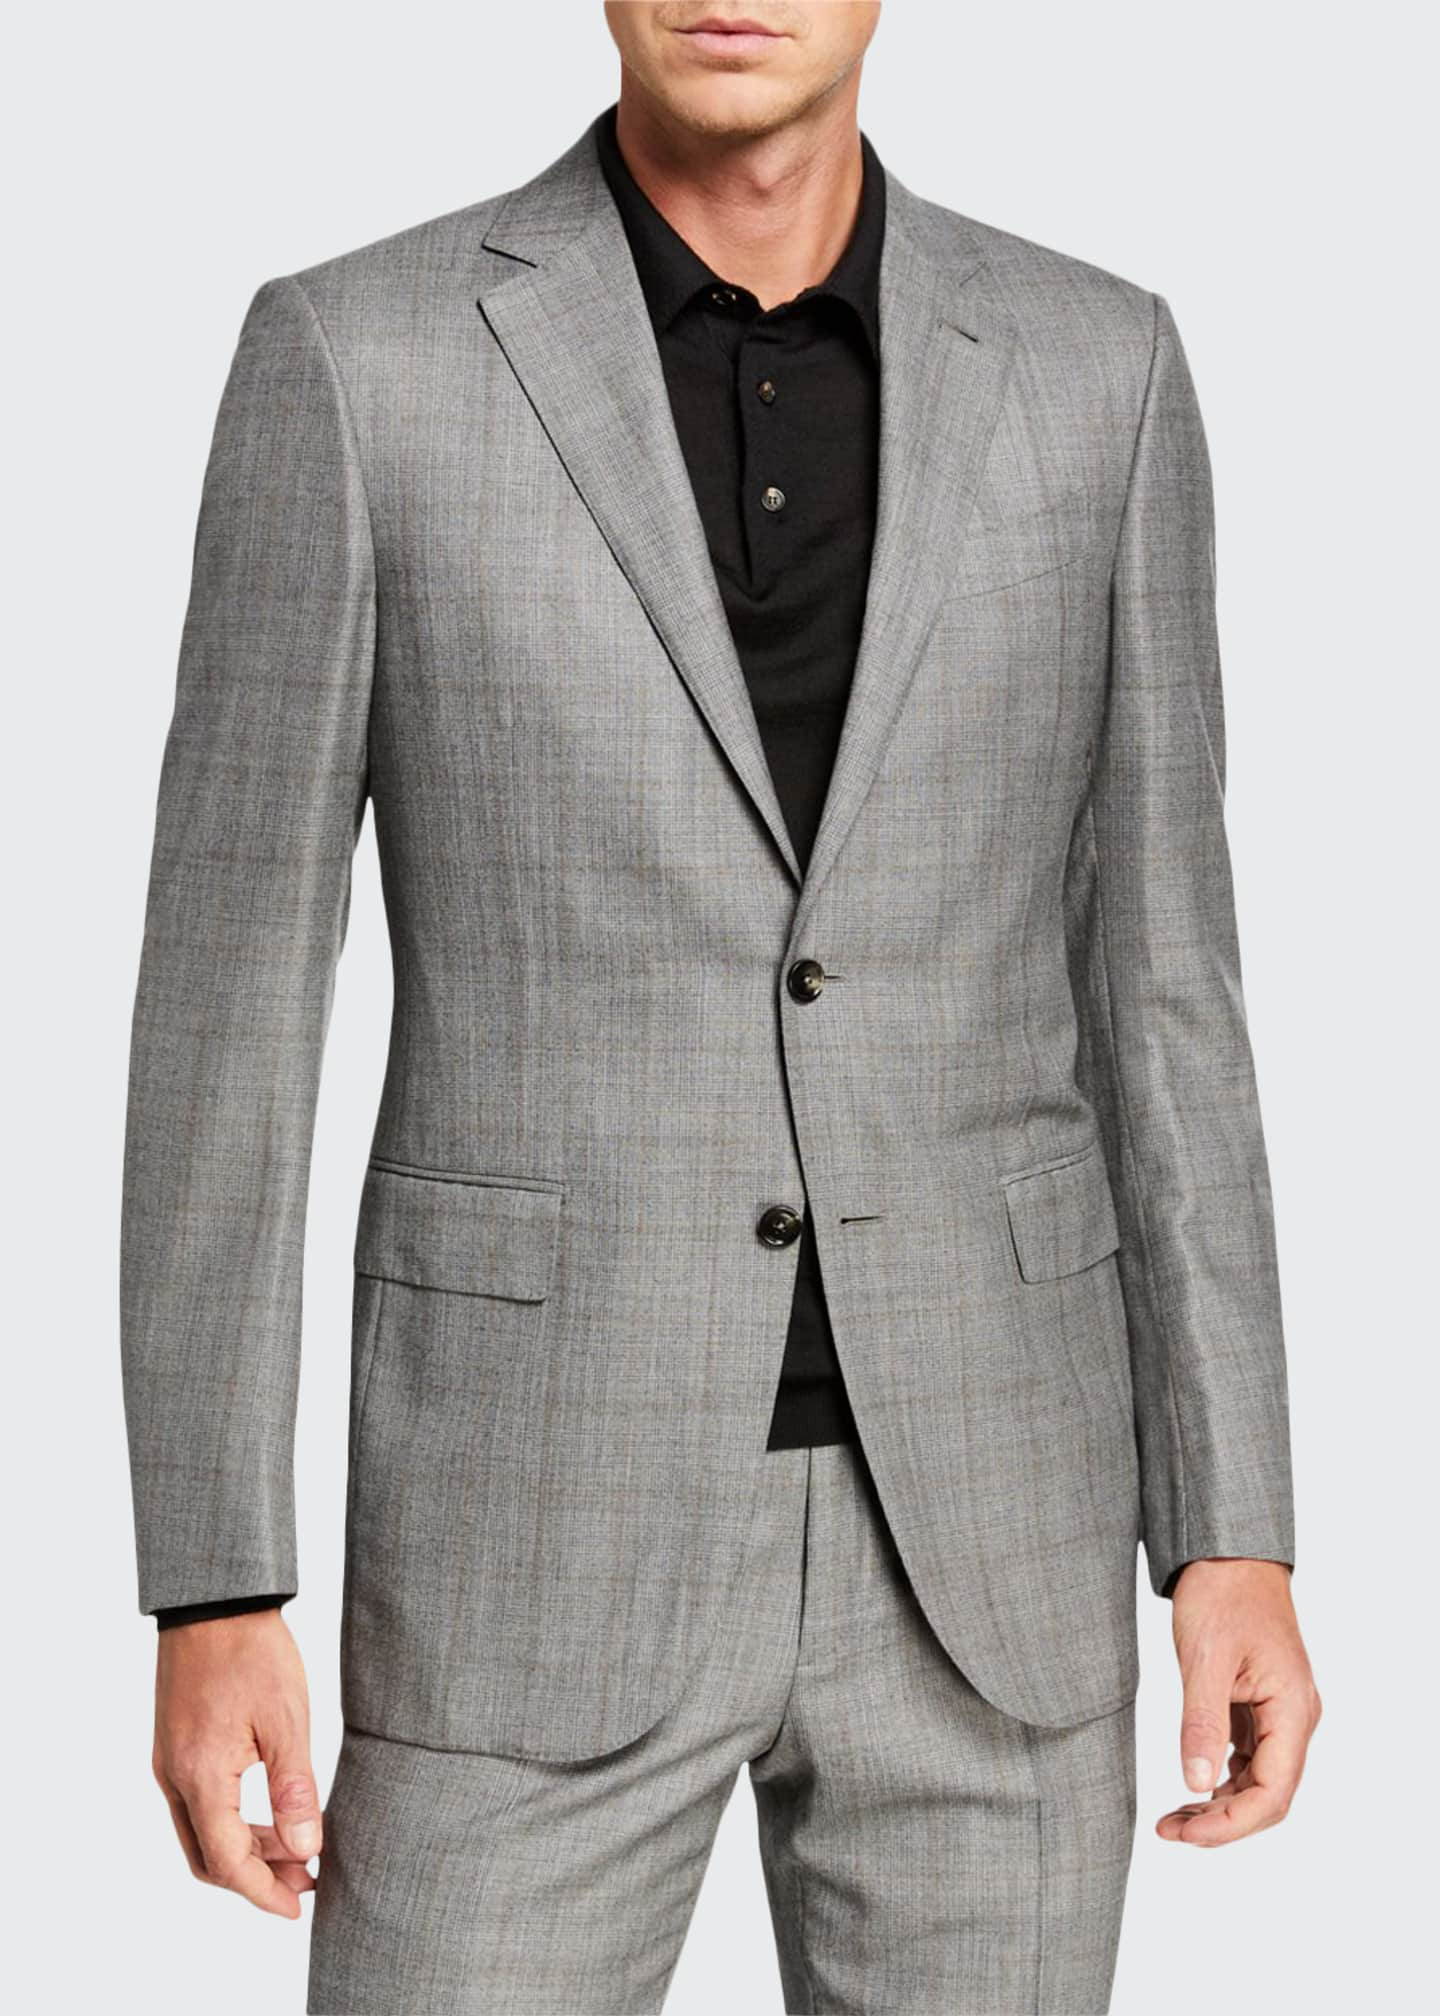 Ermenegildo Zegna Men's Prince of Wales Two-Piece Suit